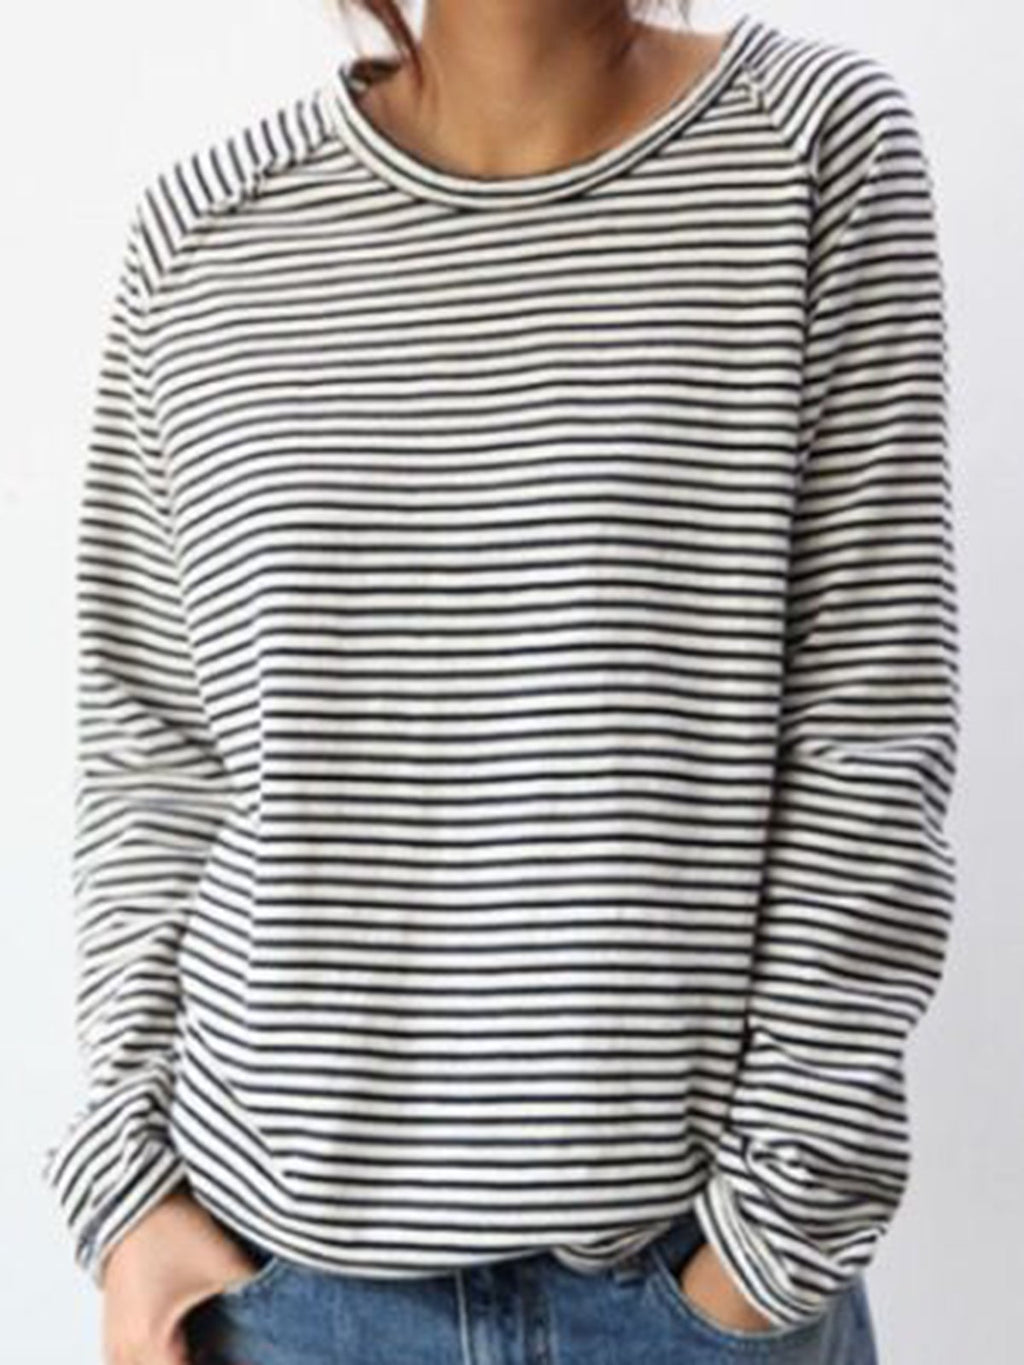 Stripes Simple & Basic Long Sleeve T-Shirts